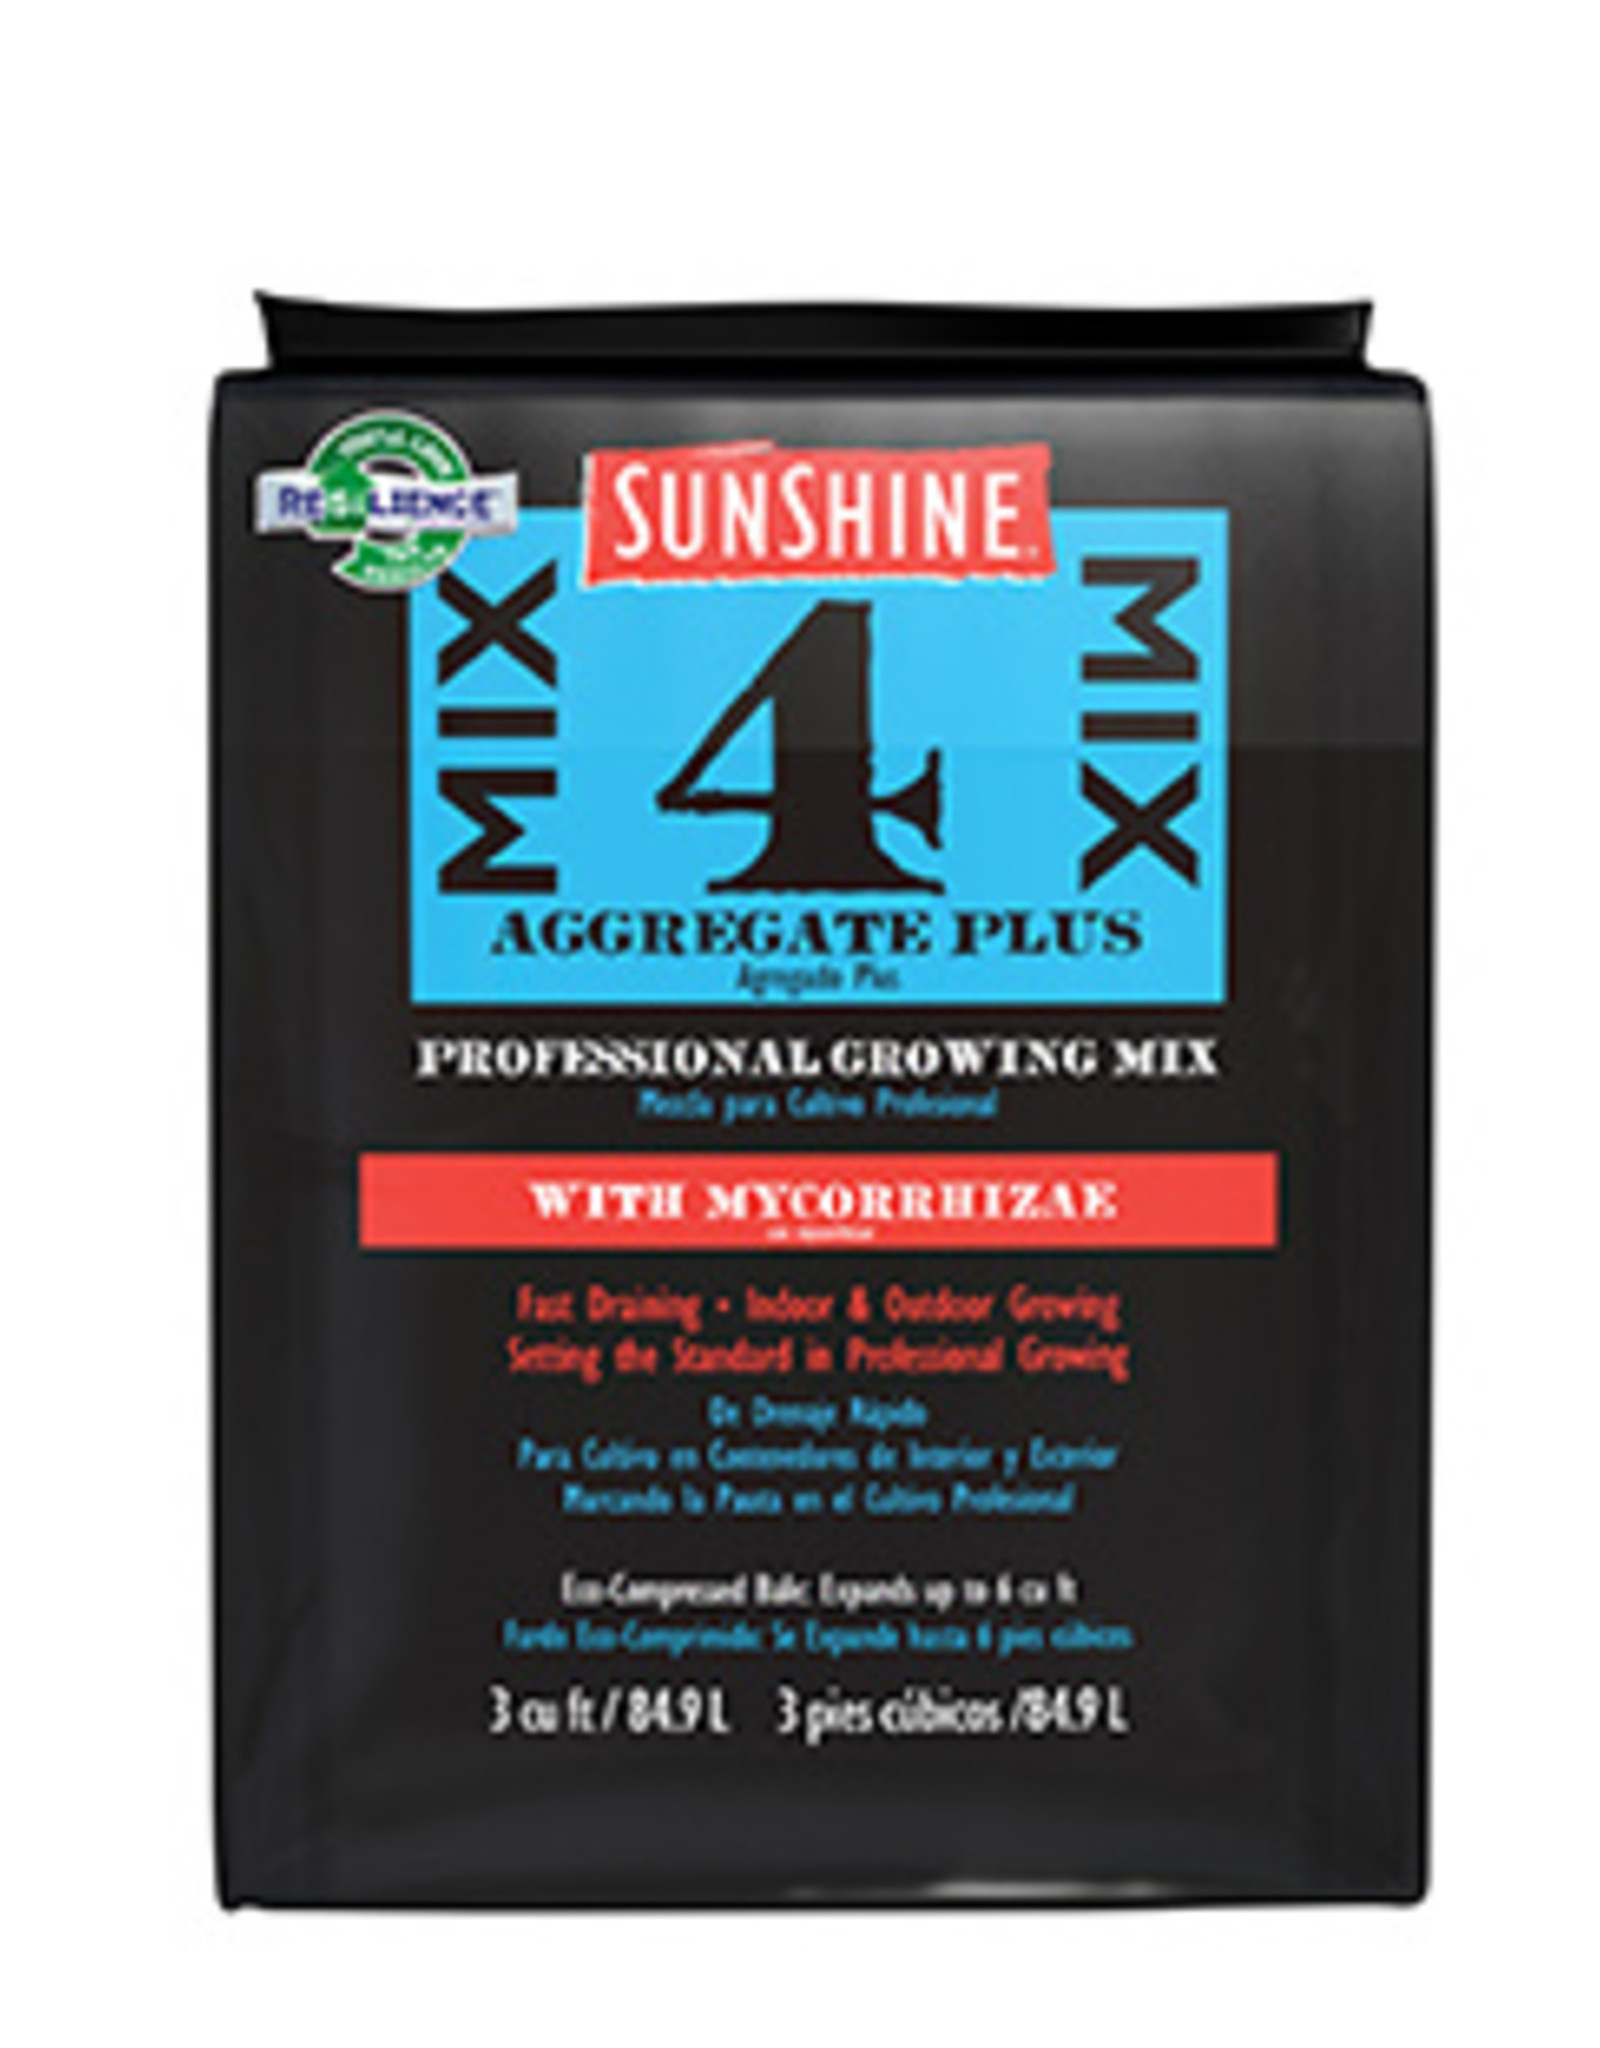 Sunshine Mix#4 W/ Mycorrhizae- 3.0 Cu/Ft